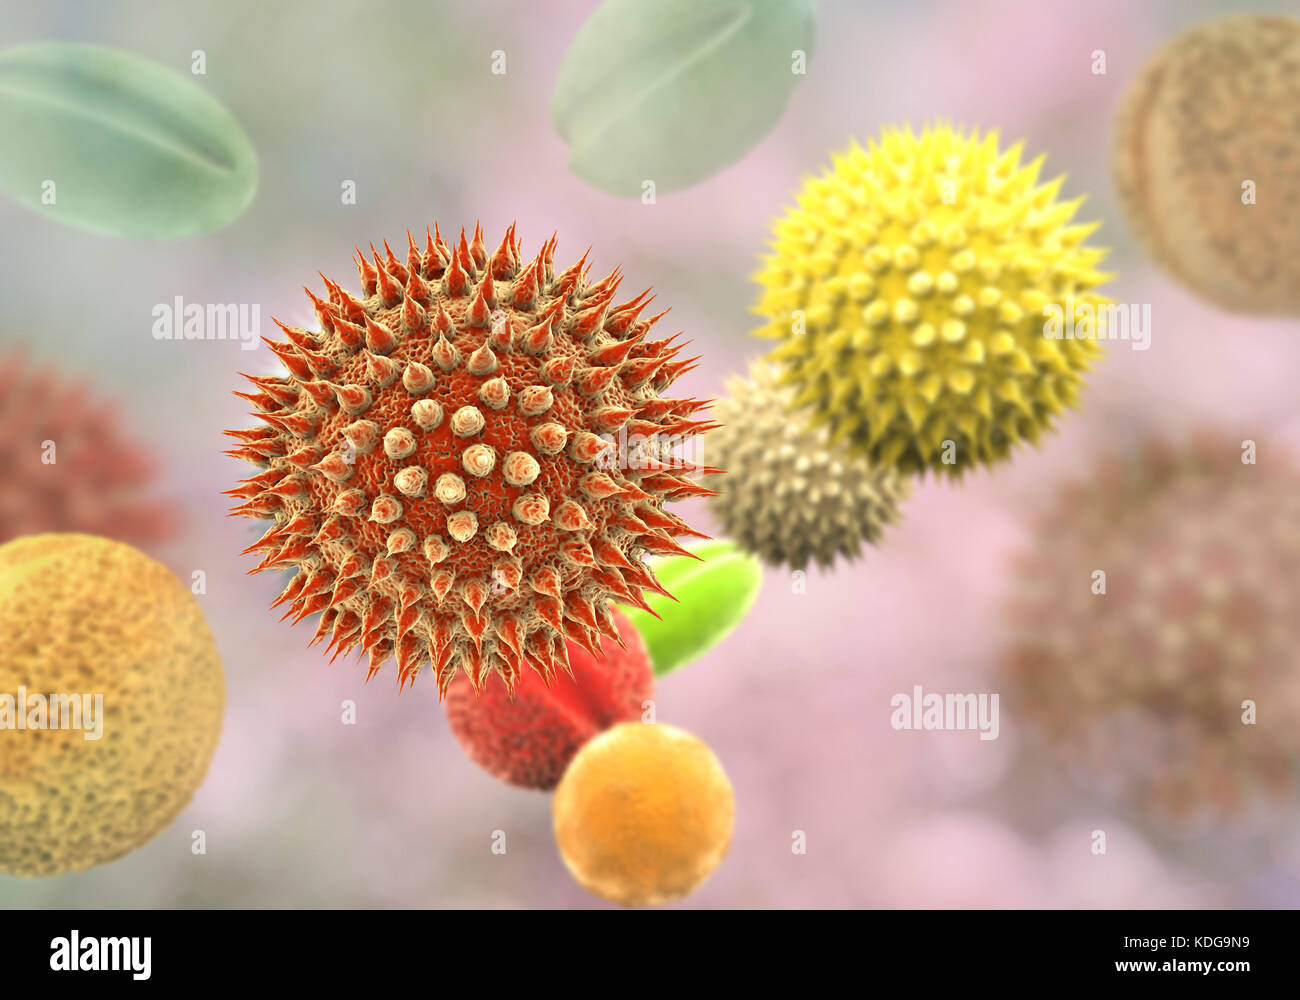 Pollen grains from different plants, computer illustration. Pollen grain size, shape and surface texture differ from one plant species to another, as seen here. The outer wall (exine) of the pollen in many plant species is highly sculpted which may assist in wind, water or insect dispersal. This pollen sculpting is also used by botanists to recognise plant species. Pores in the pollen wall help in water regulation and germination. These reproductive male spores produced by seed plants contain the male gametes. Pollen fertilises the female egg, with subsequent formation of plant seeds. Stock Photo